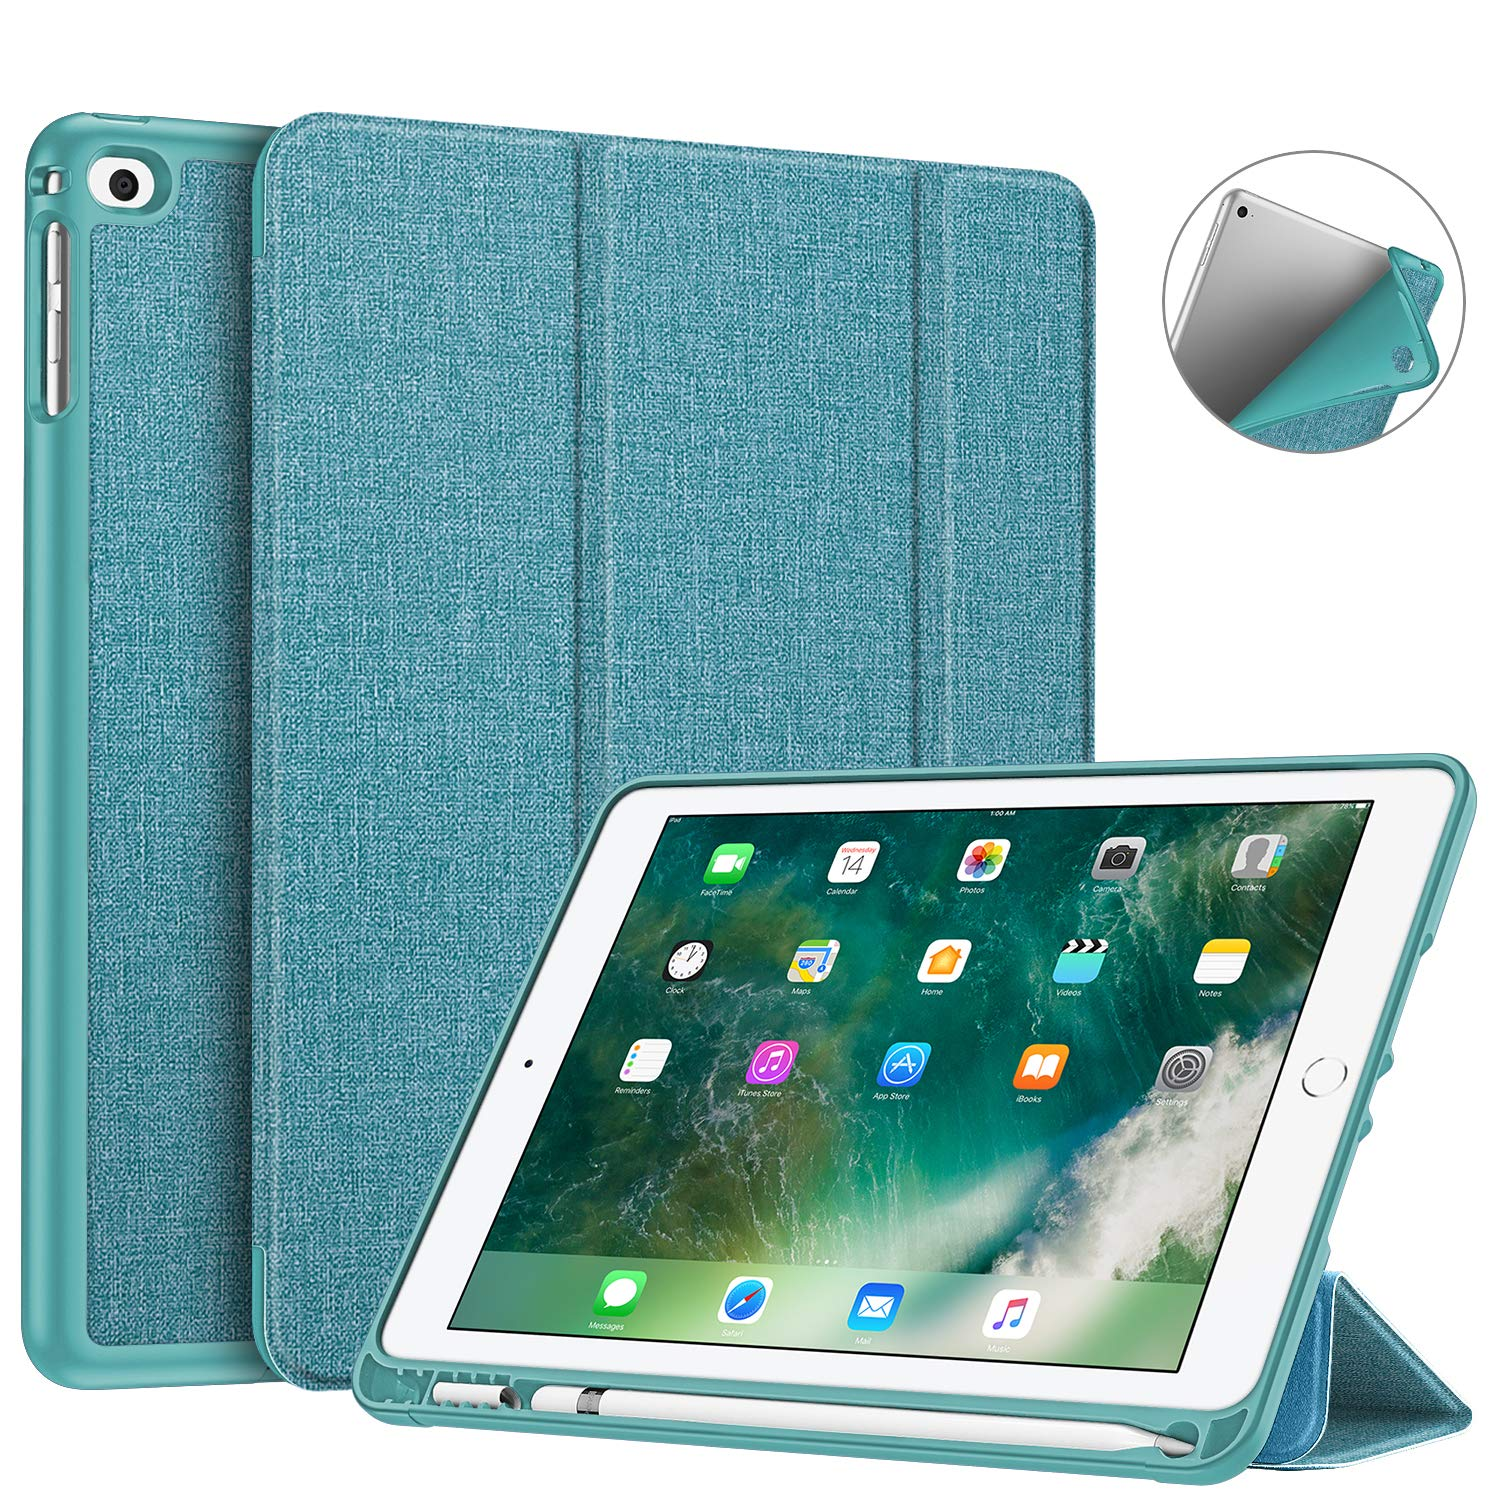 Fintie Case with Built-in Pencil Holder for iPad 9.7 2018 2017 / iPad Air 2 / iPad Air - [SlimShell] Lightweight Soft TPU Back Protective Cover w/Auto Wake Sleep, Light Green